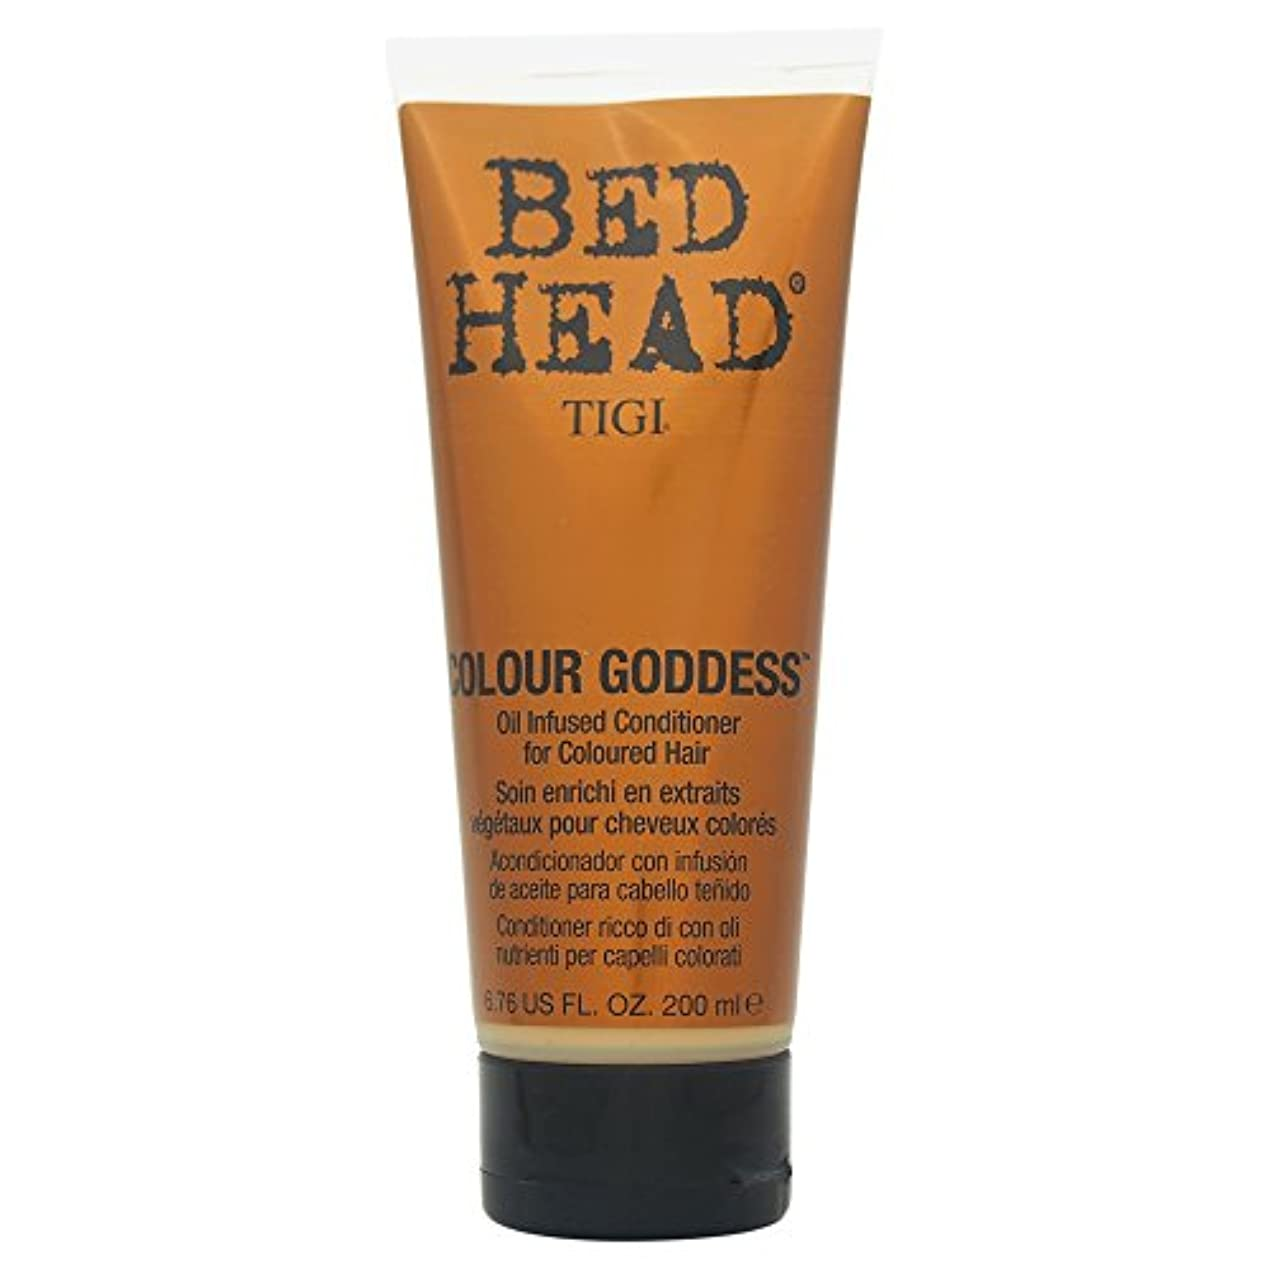 パーク綺麗な猟犬Tigi Bed Head Colour Goddess Oil Infused Conditioner 200ml [並行輸入品]